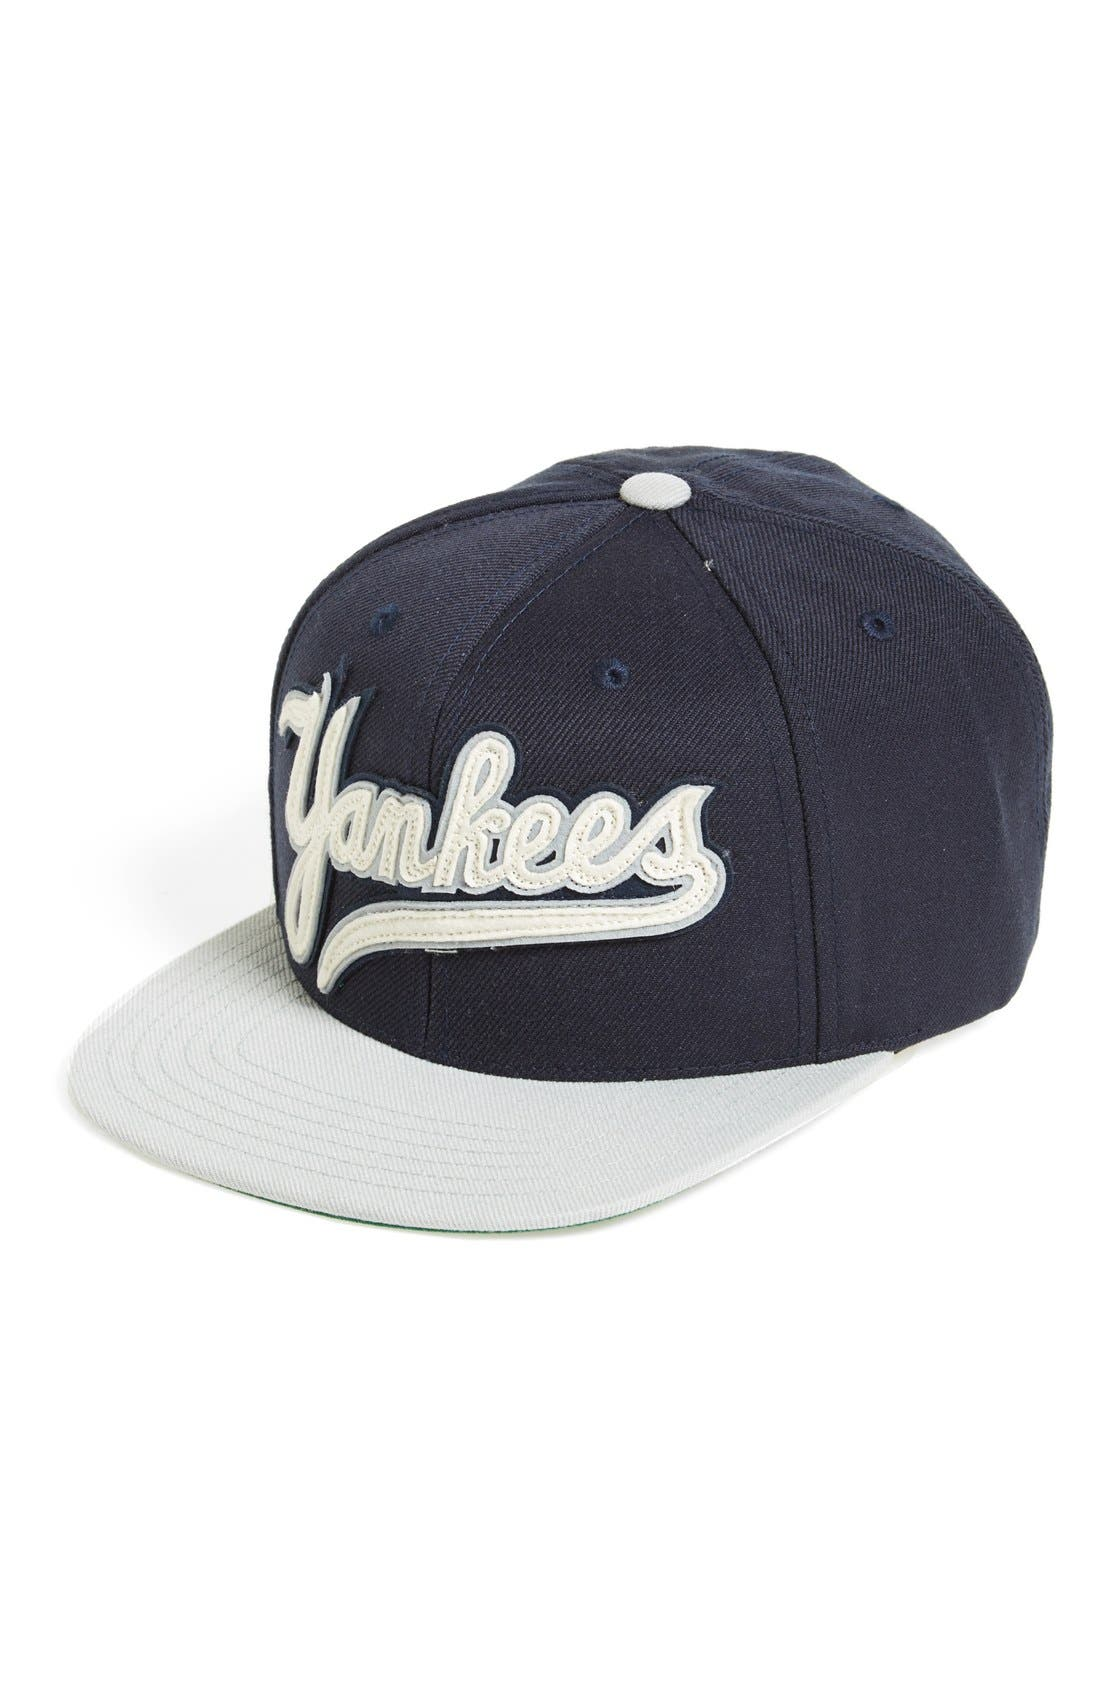 Alternate Image 1 Selected - American Needle 'New York Yankees - Flynn' Snapback Cap